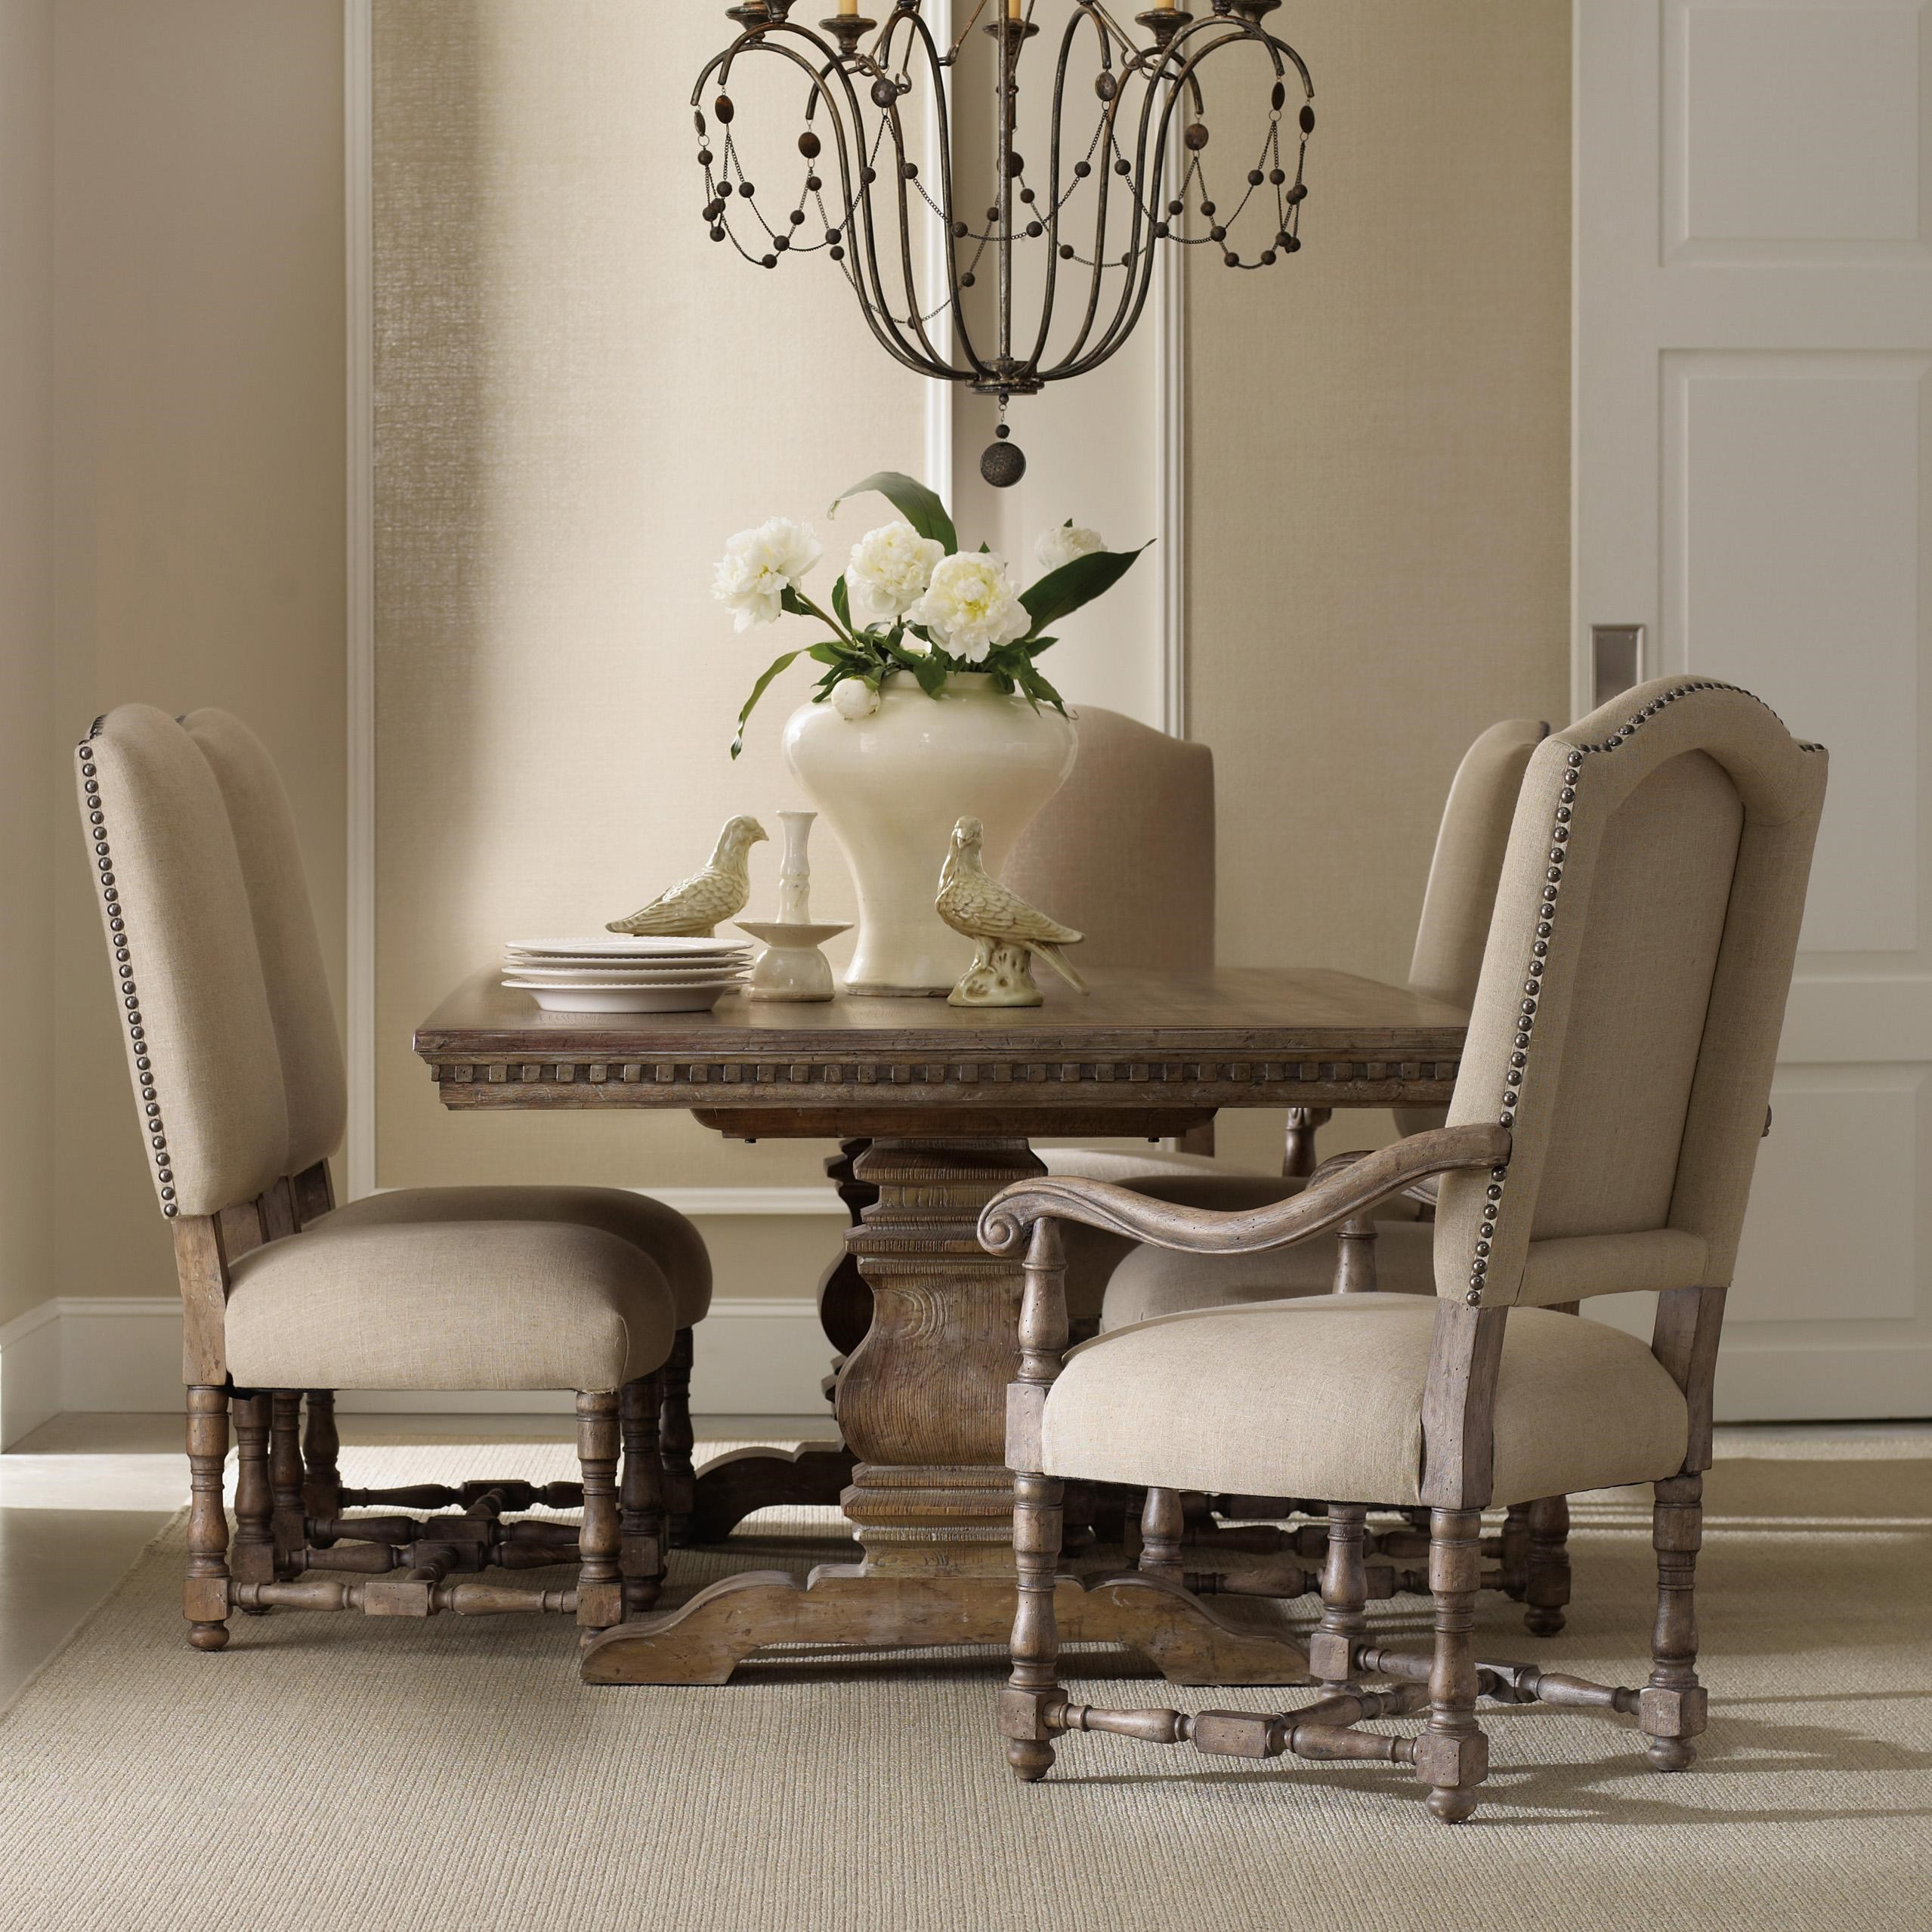 Hooker Furniture Sorella Formal Dining Set With Rectangular Table,  Upholstered Arm Chairs And Upholstered Side